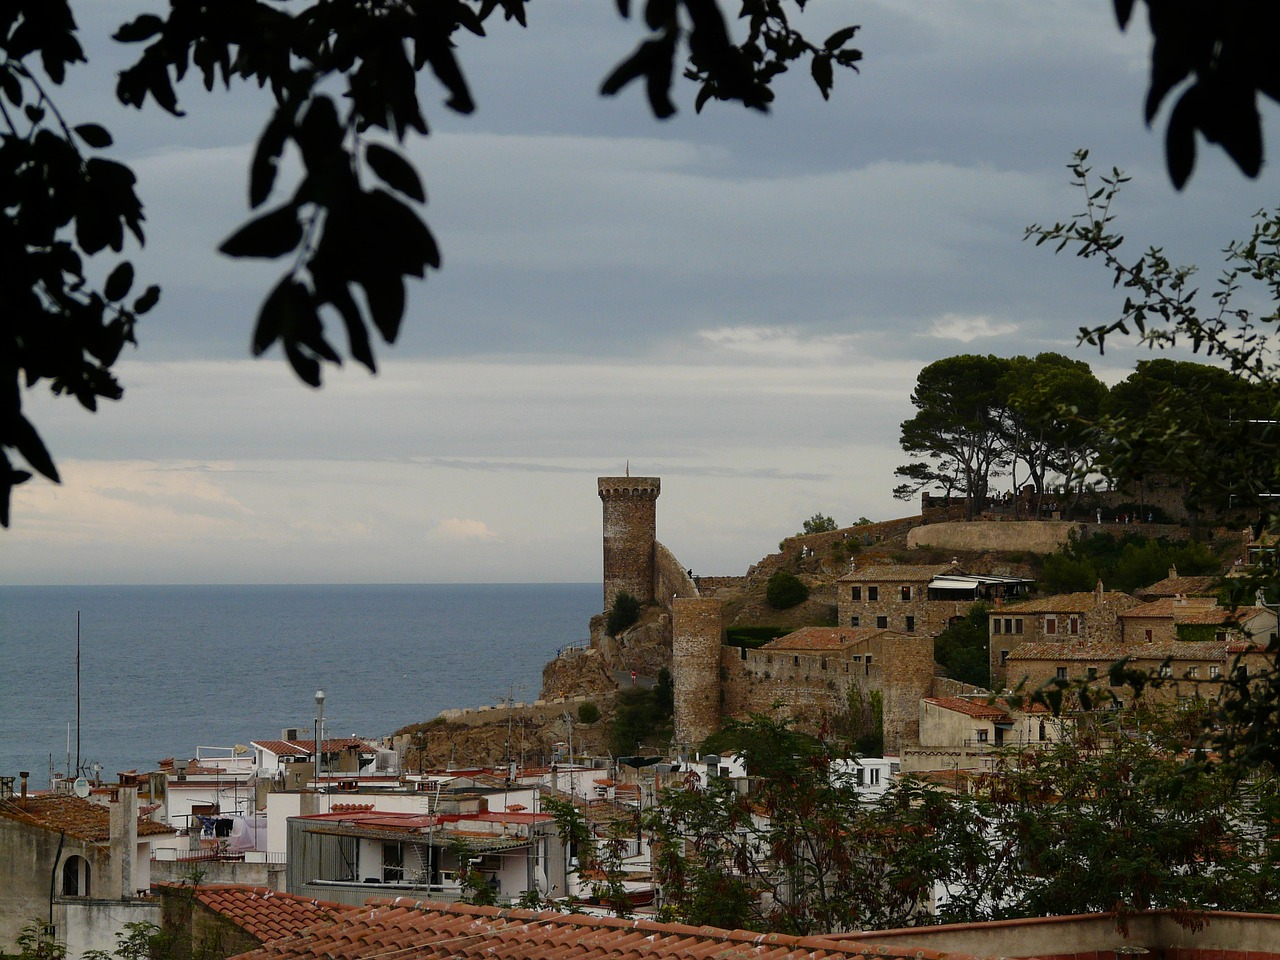 postkartenmotiv tossa de mar spain free photo